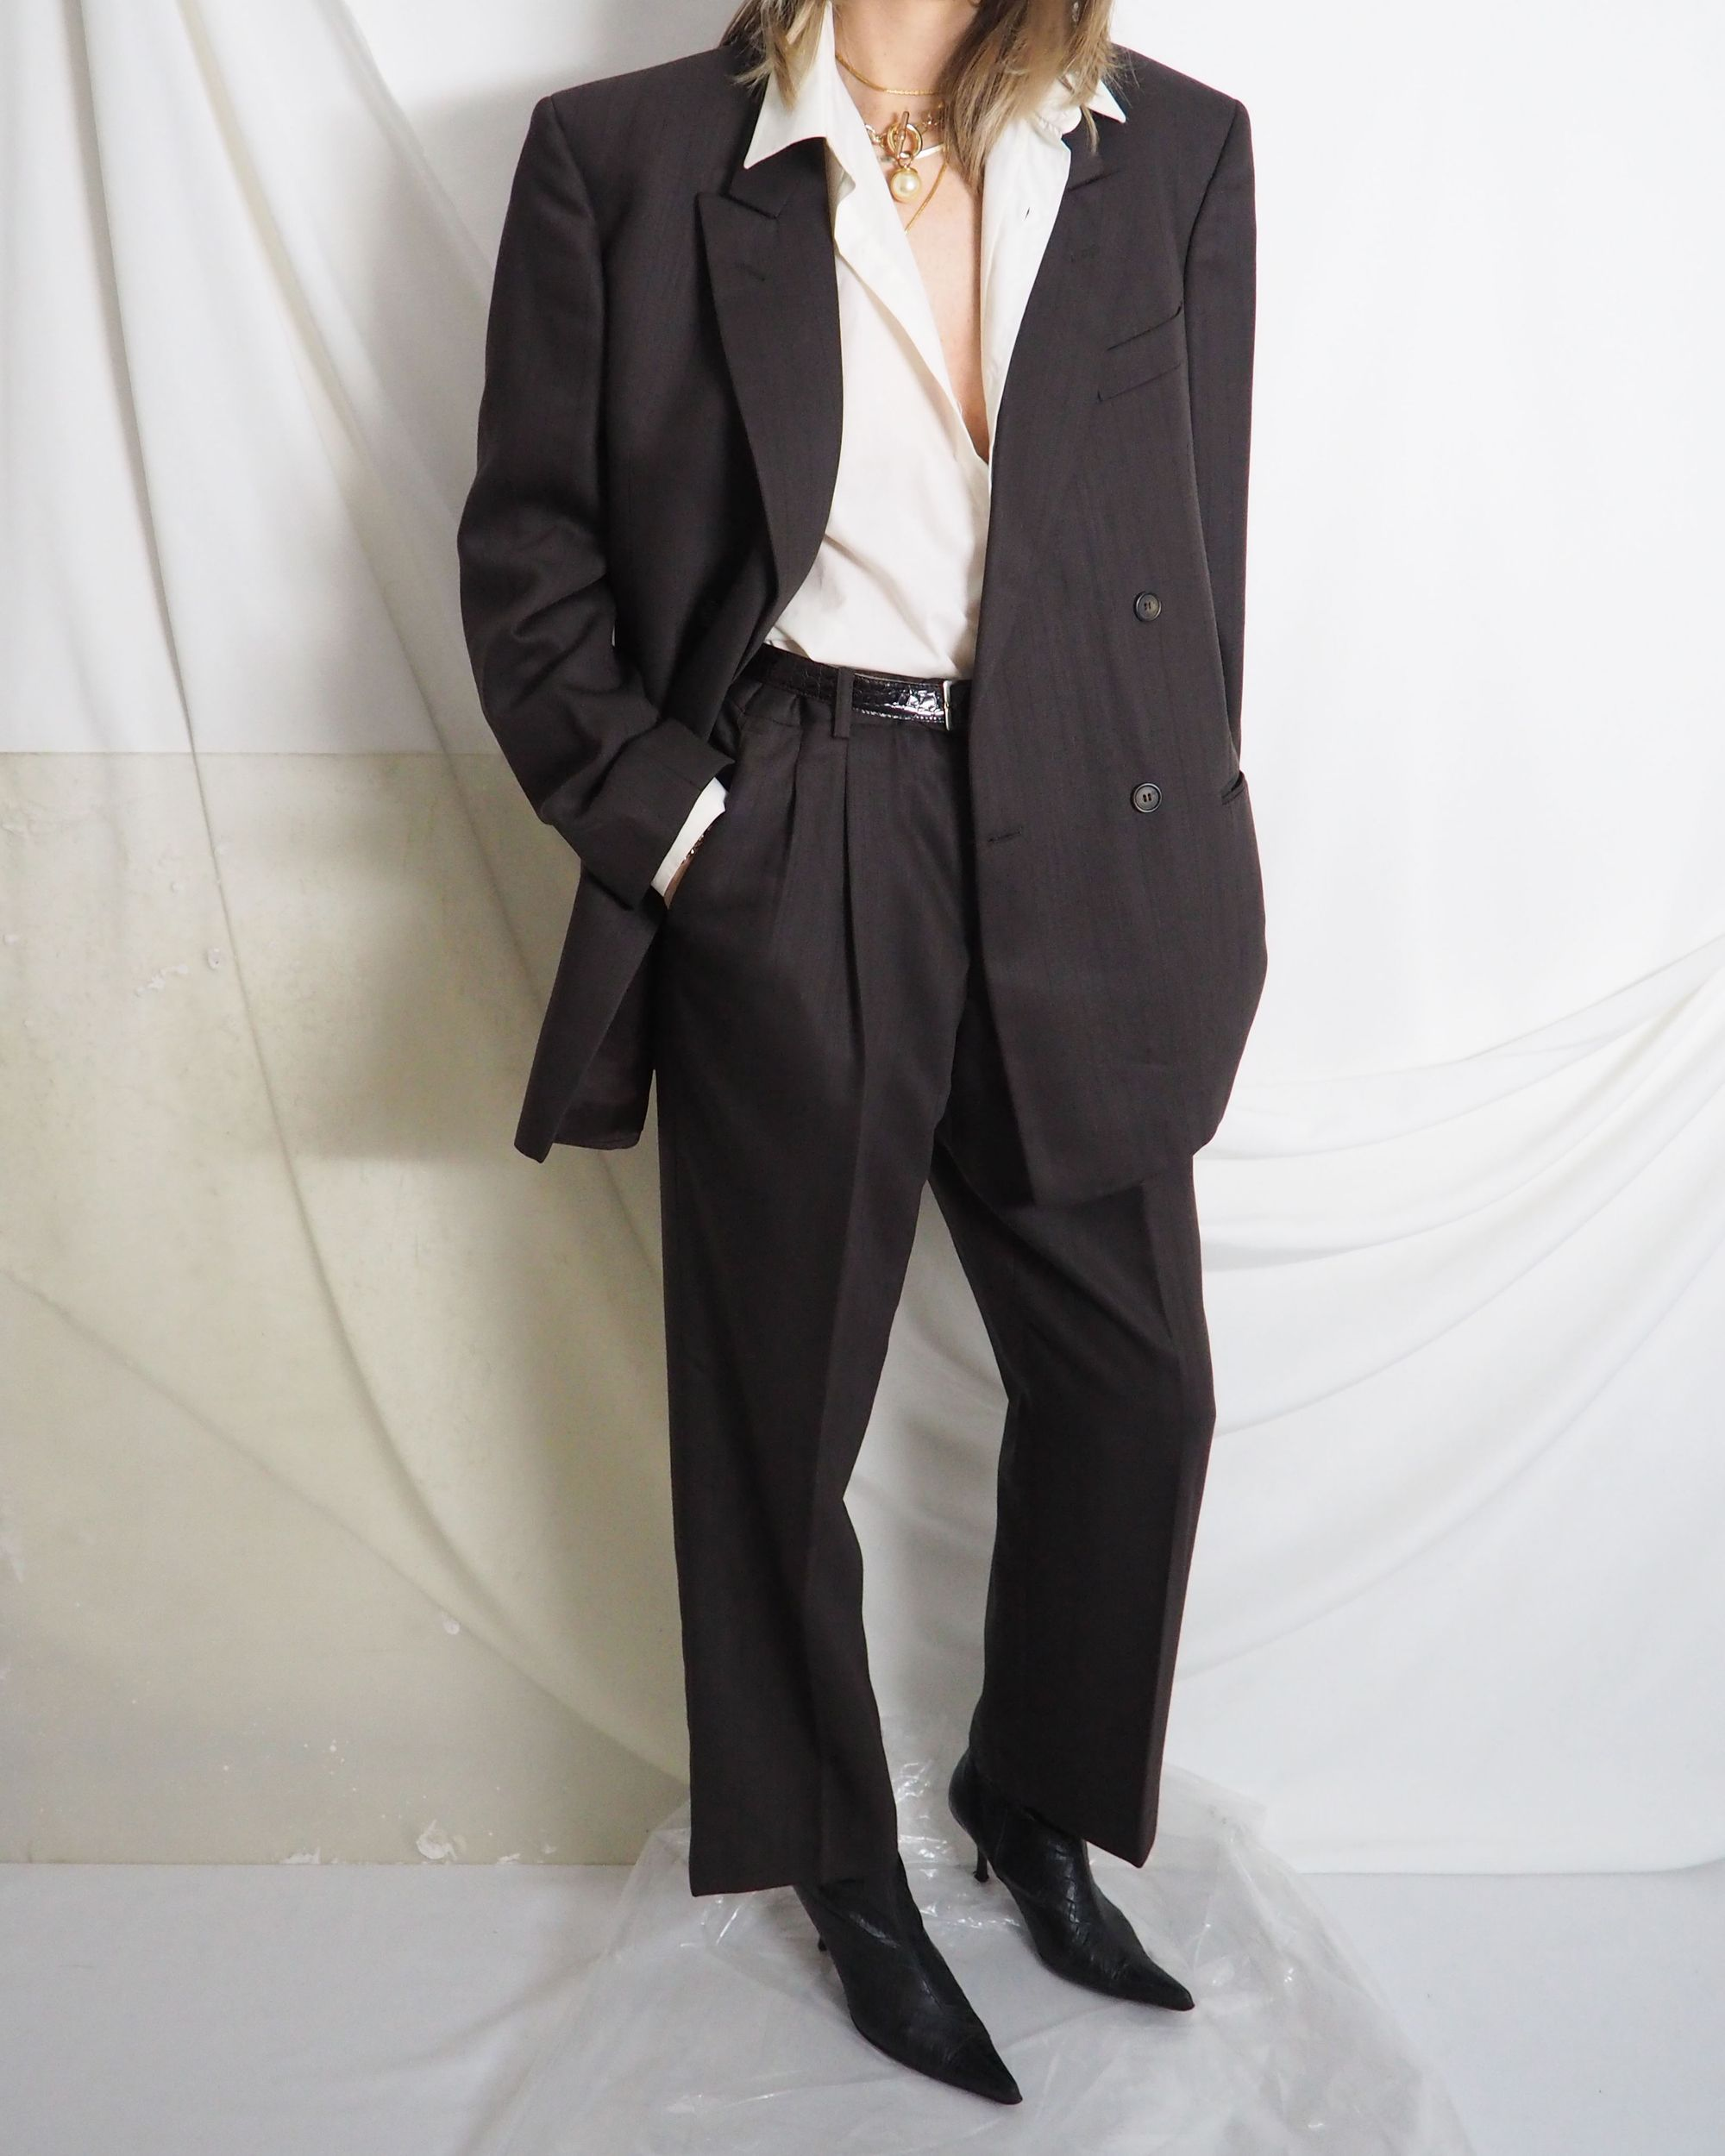 Vintage Chocolate Brown Menswear Suit With High Waist Pleated Pants And Beige Shirt Untitled In 2020 Vintage Clothing Online Vintage Outfits Online Shopping Clothes